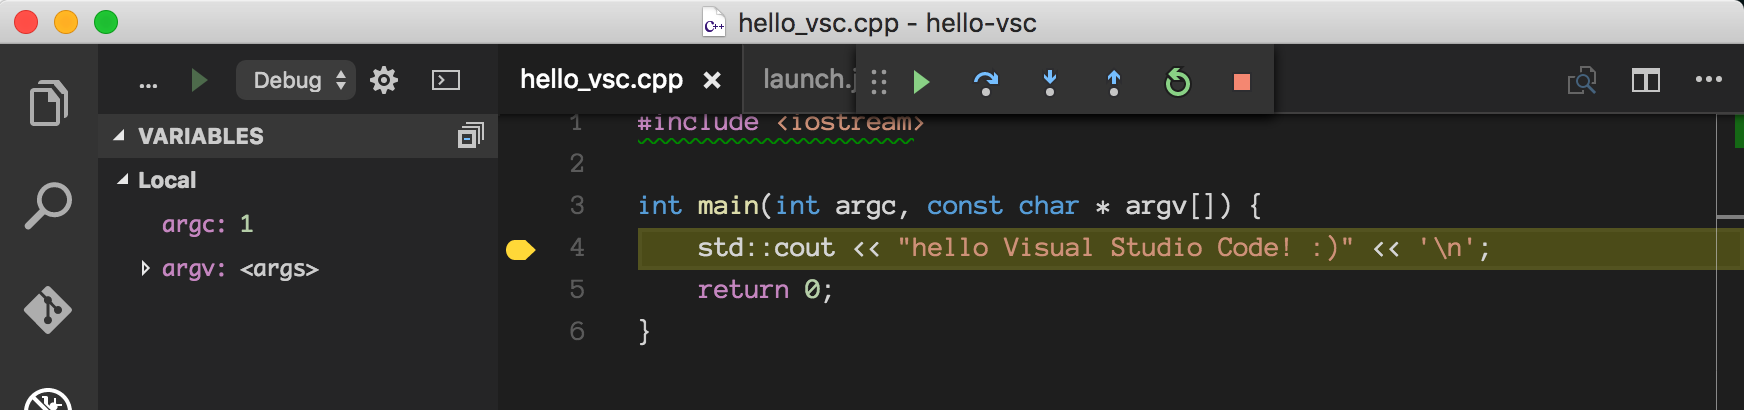 C++ Development using Visual Studio Code, CMake and LLDB